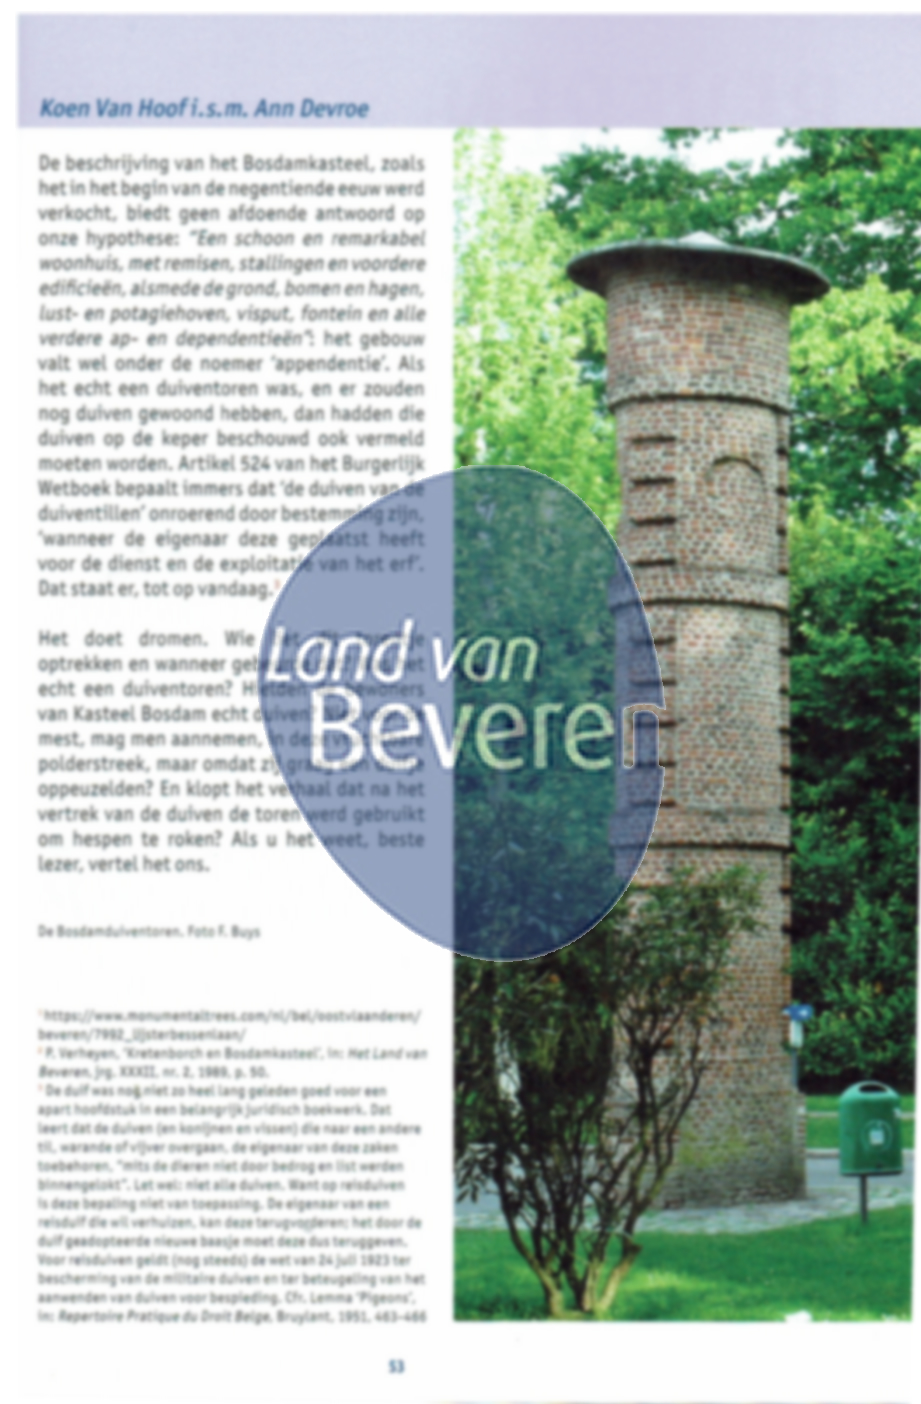 Cover of Beveren in-zicht. De appendentie van kasteel Bosdam